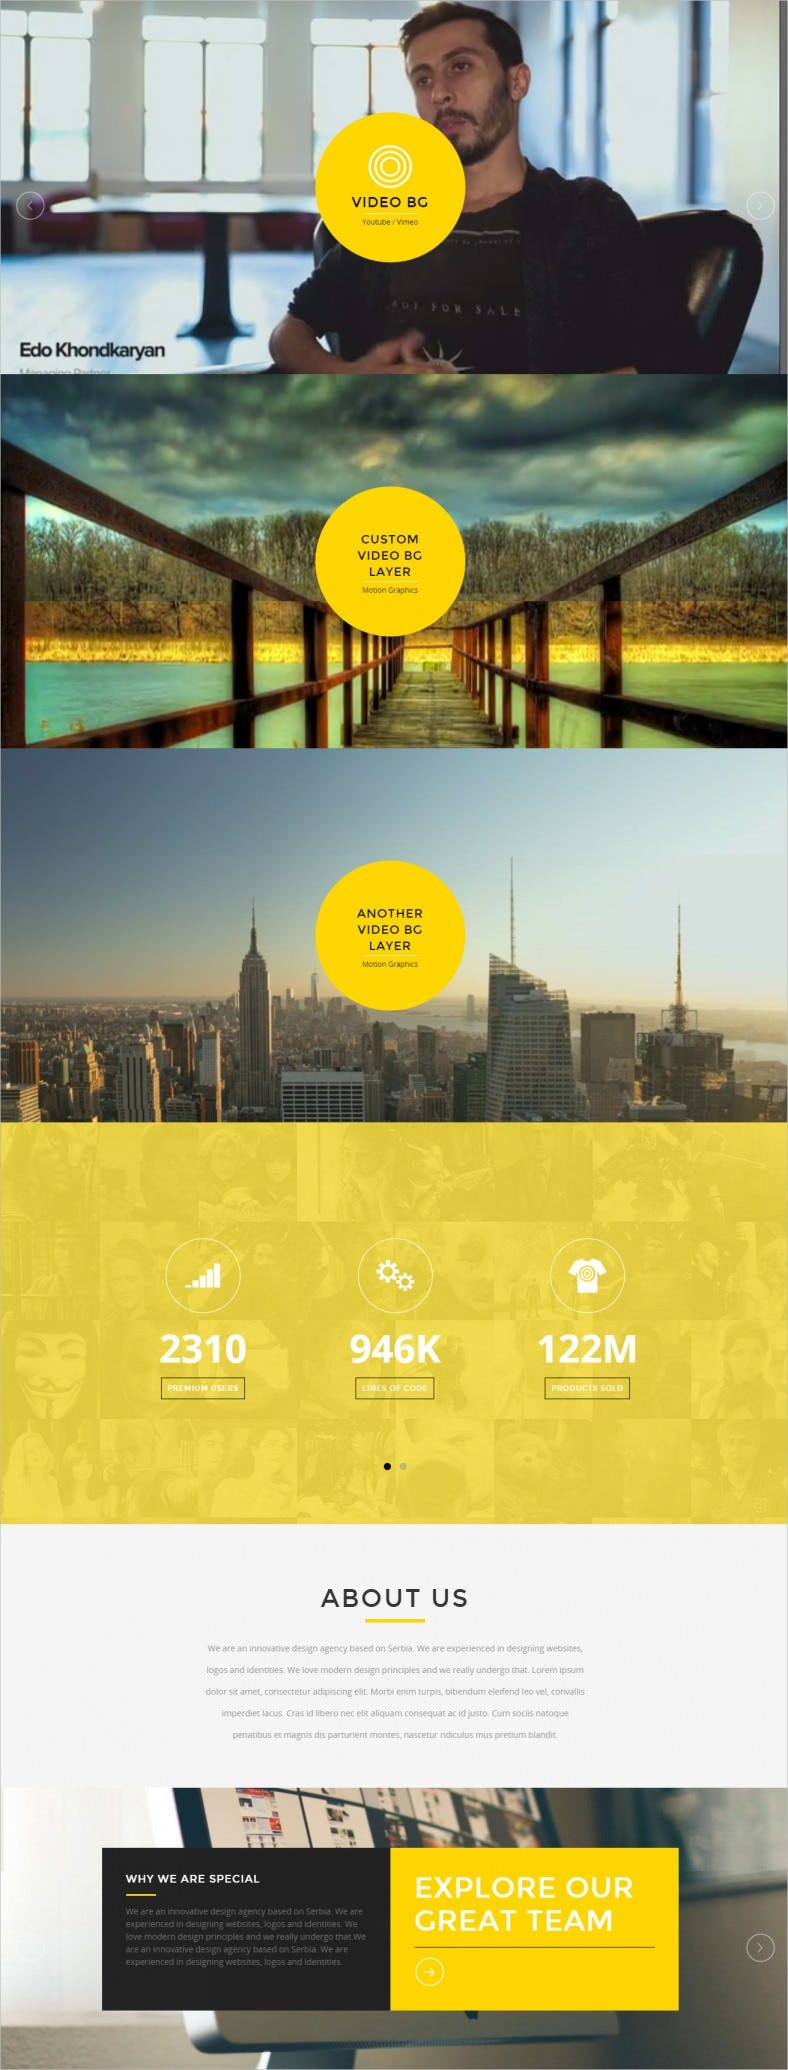 PRESENCE-Responsive-One-Page-Parallax-Template-788x2070.jpg